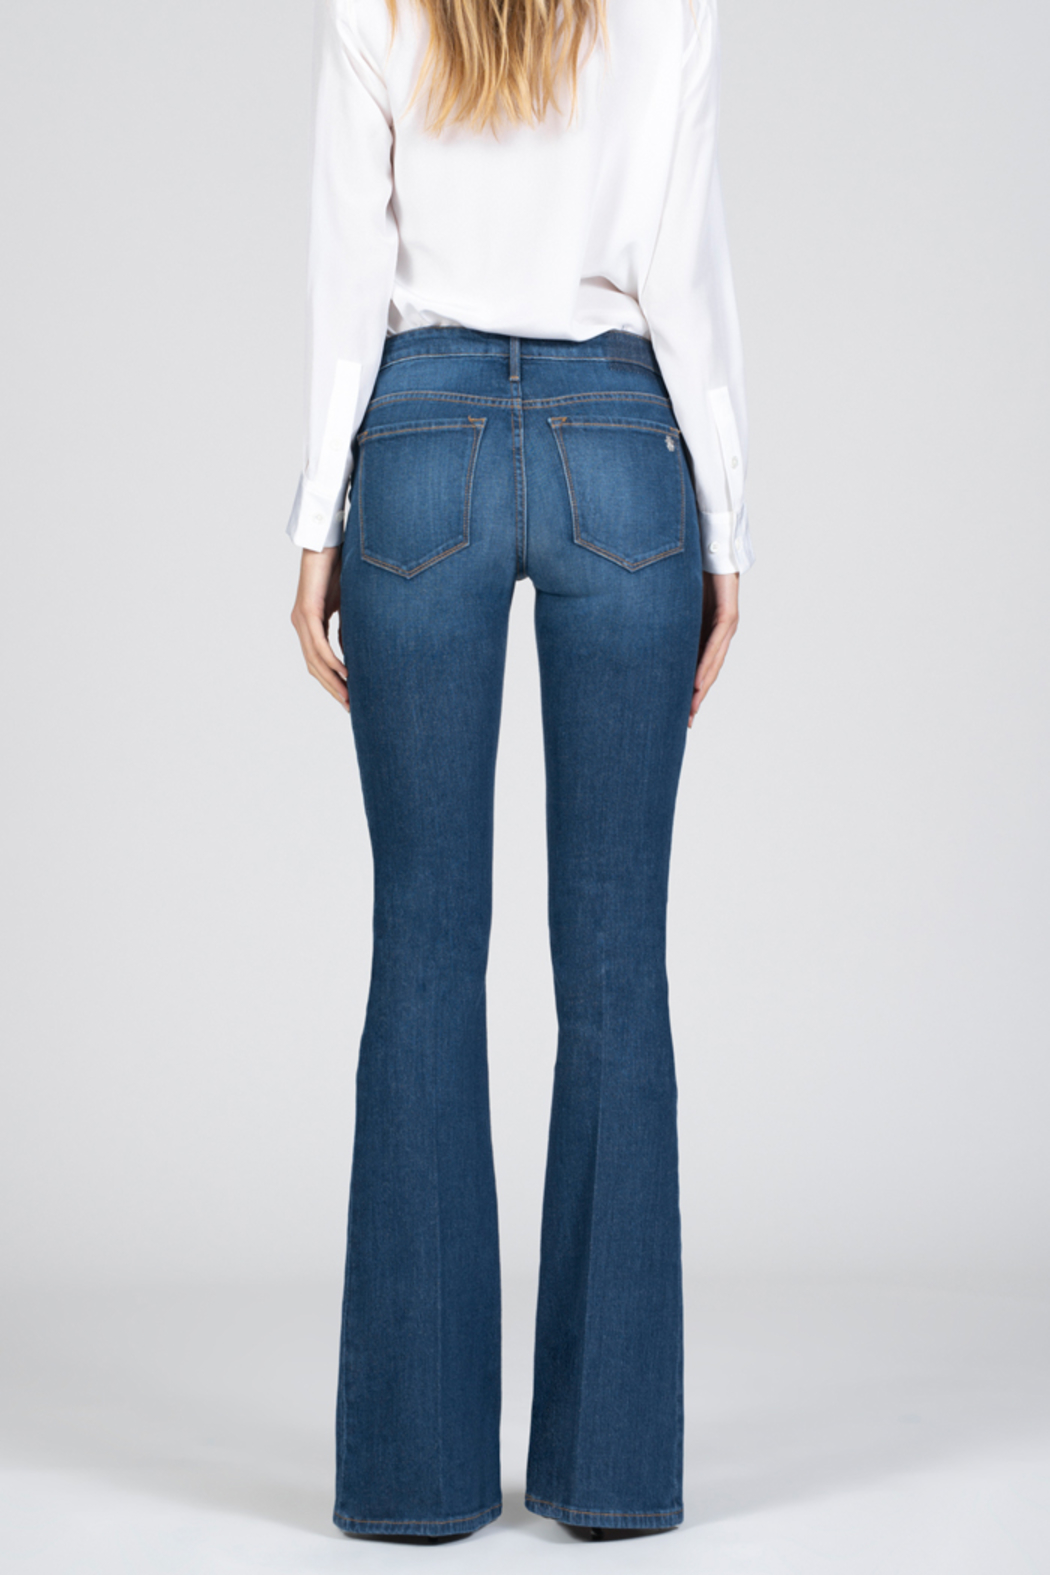 Black Orchid Denim Black Orchid Skinny Flare Jean - Side Cropped Image